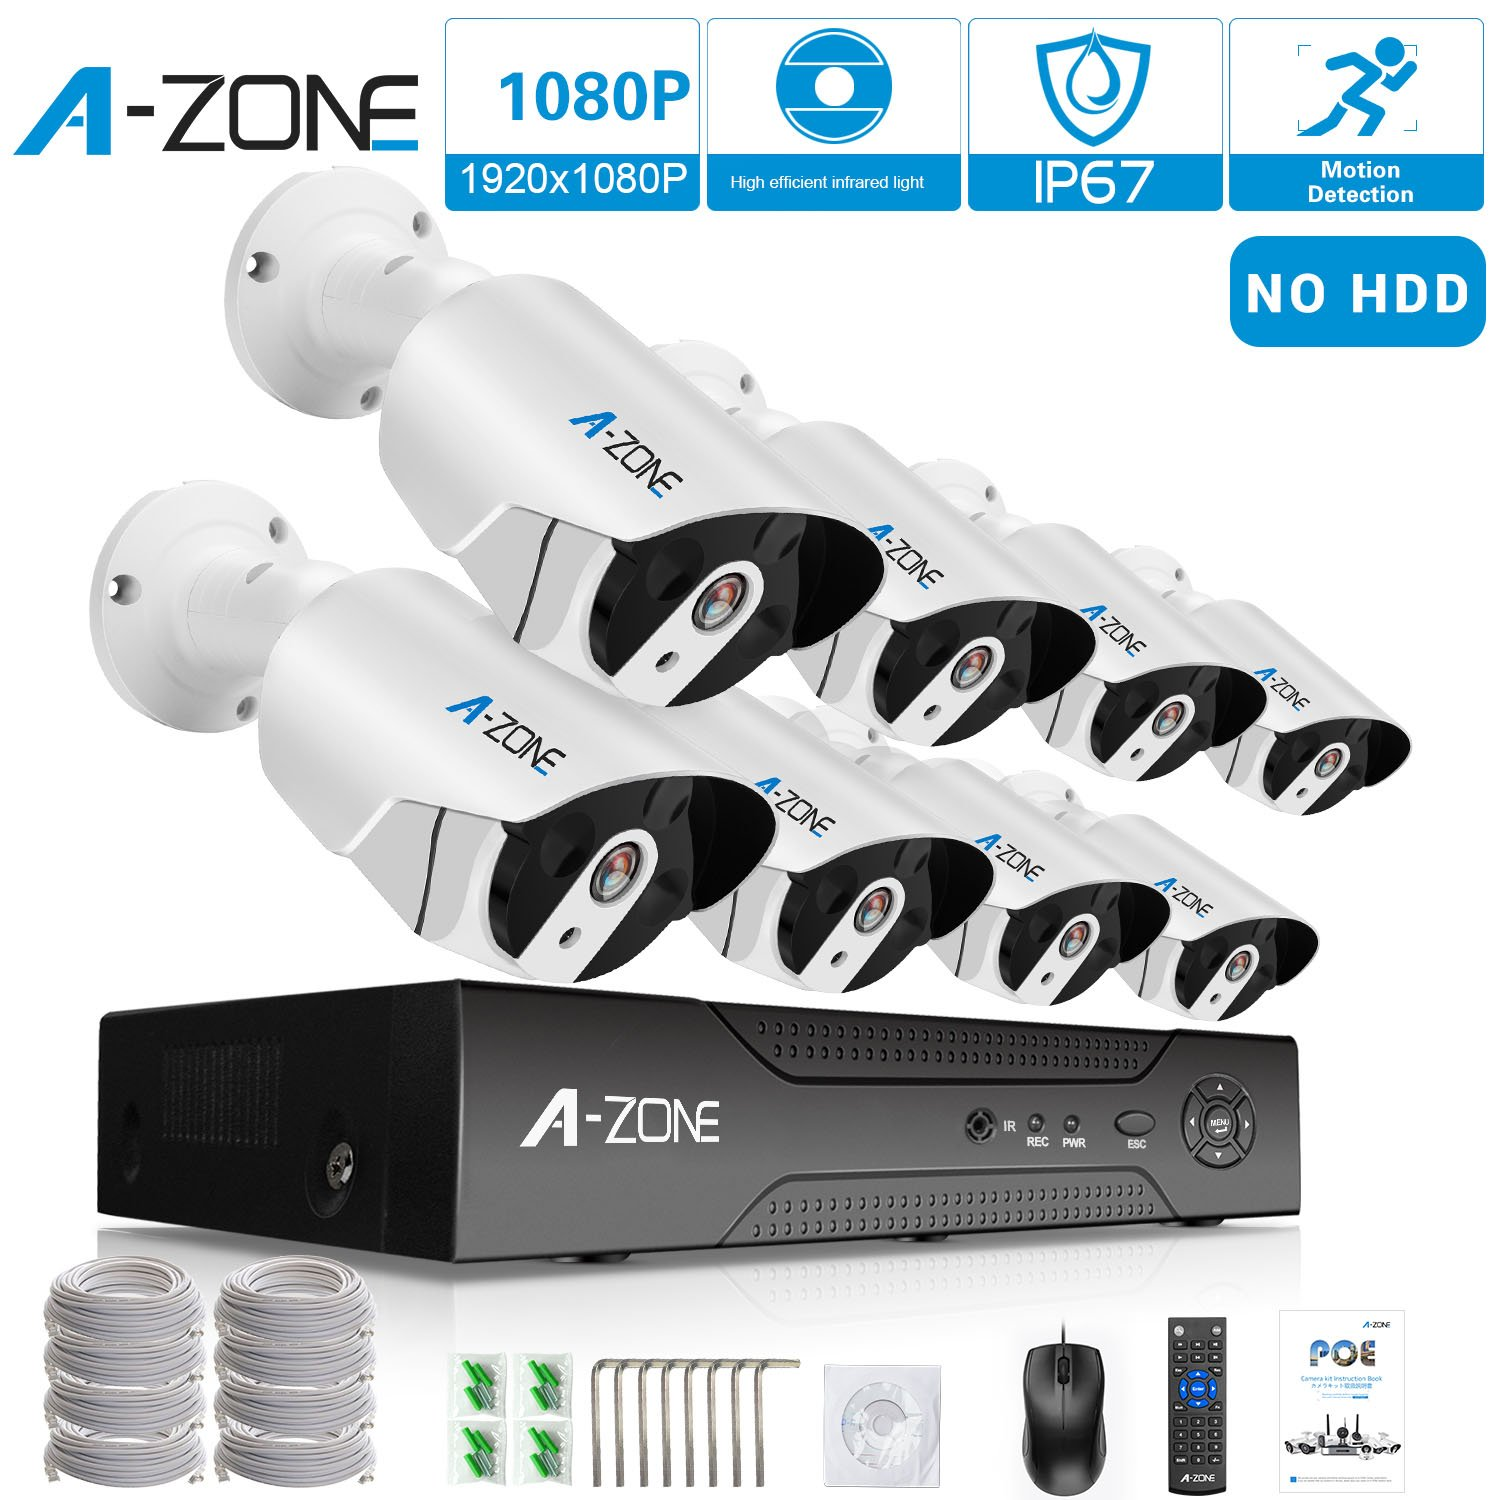 Security Camera System A-ZONE Security 1080p 8 Channel PoE IP Security Surveillance Camera System with 8 Outdoor/Indoor 1080P Cameras, Free Remote View, Super HD Night Vision- No Hard drive